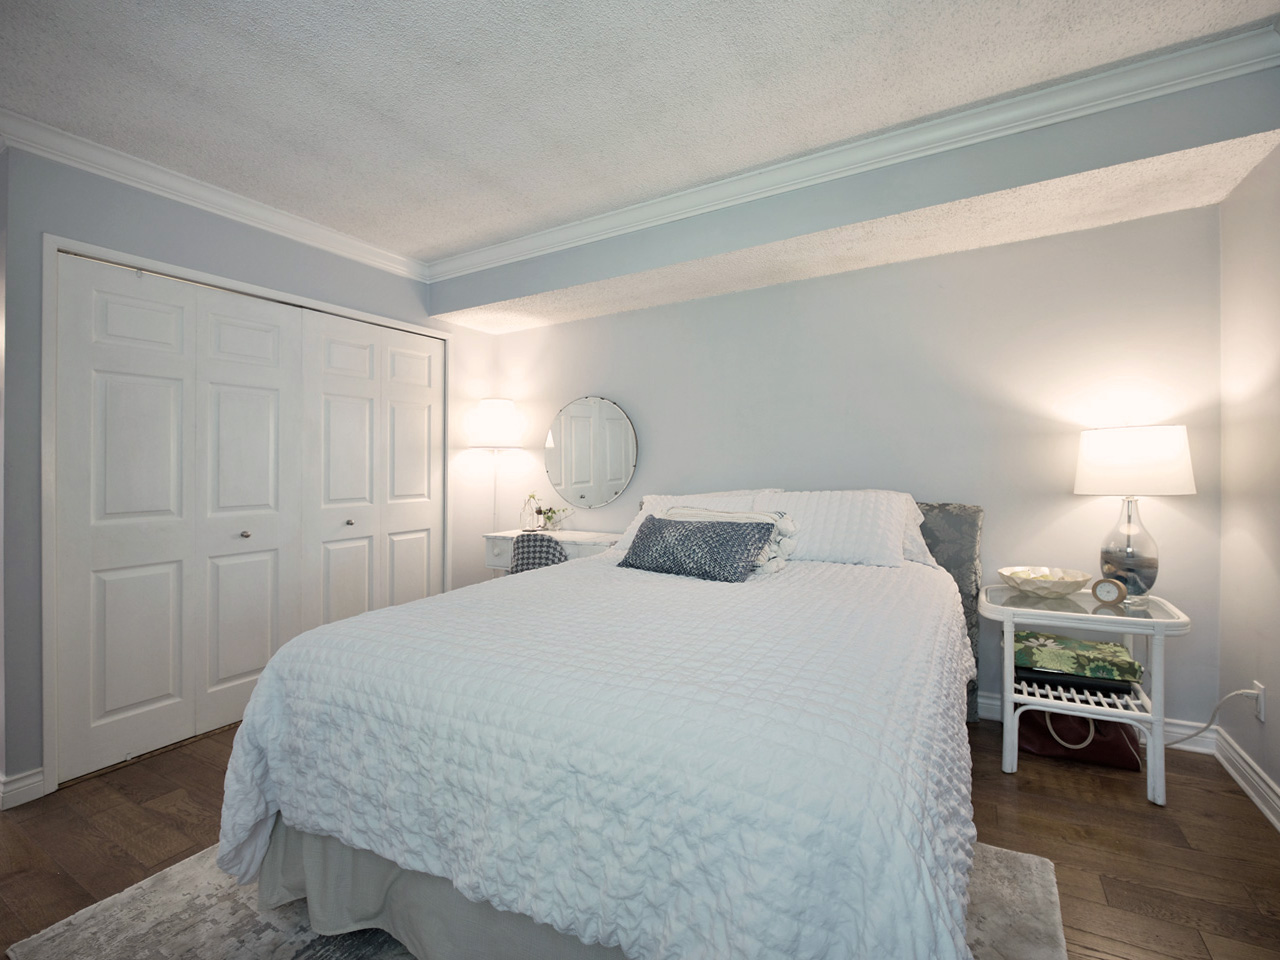 1351_w_8th-bed-2